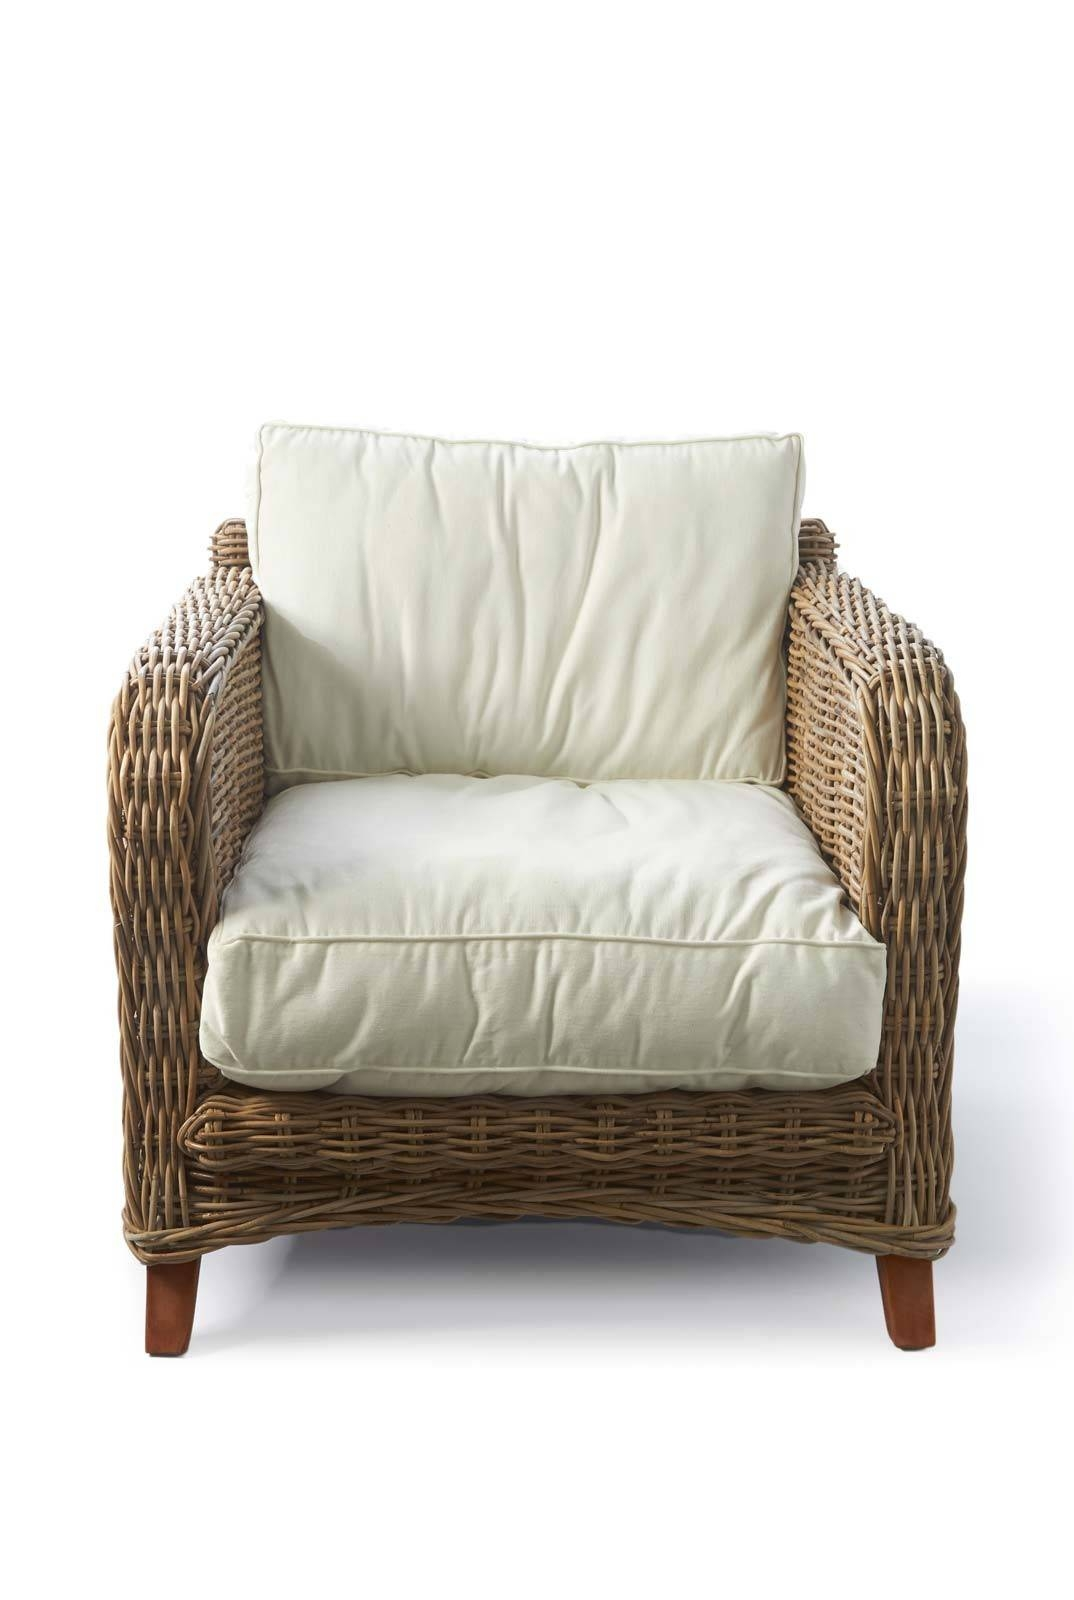 Furniture Home : Lounge Chairs Single Sofa Chairs Modern Elegant with regard to Single Sofa Chairs (Image 9 of 30)